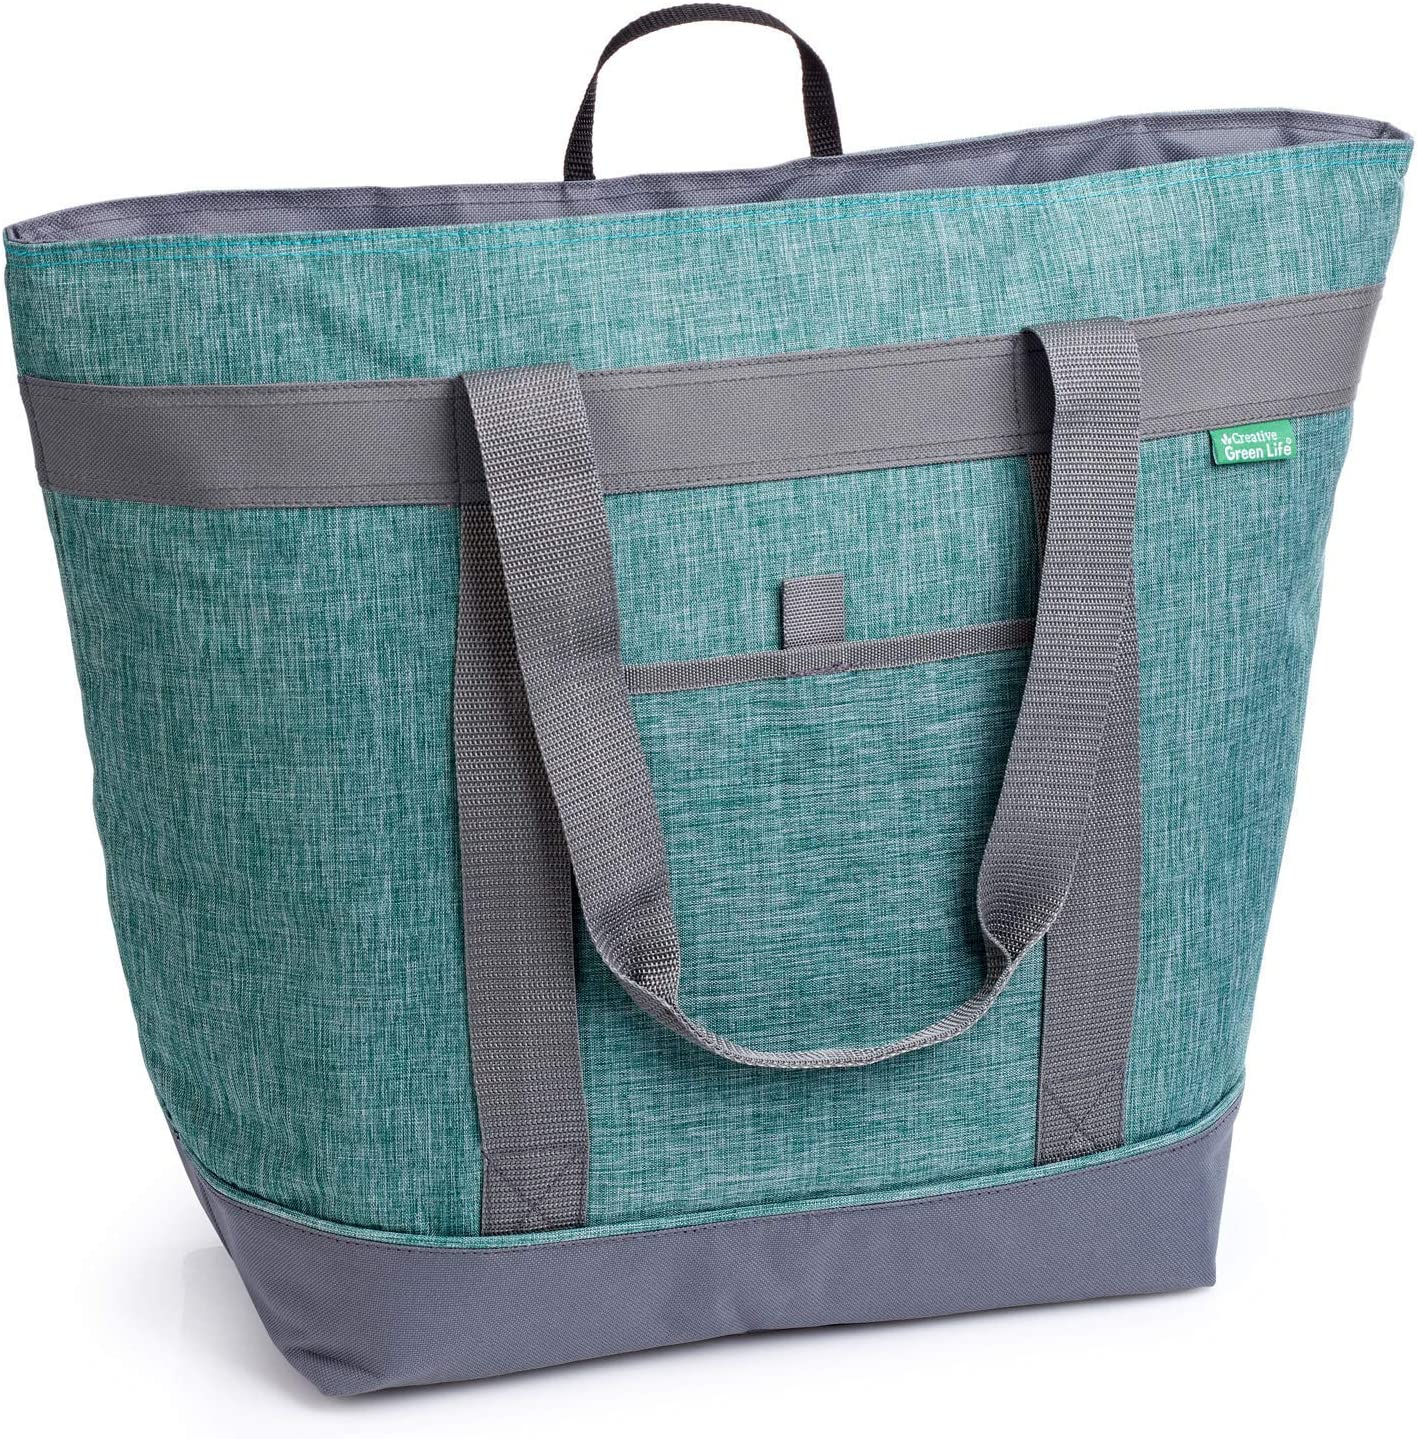 Jumbo Insulated Cooler Bag (Green) with HD Thermal Foam Insulation. Premium Quality Soft Sided Cooler Makes a Perfect Insulated Grocery Bag, Food Delivery Bag, Travel Cooler, or Picnic Cooler.